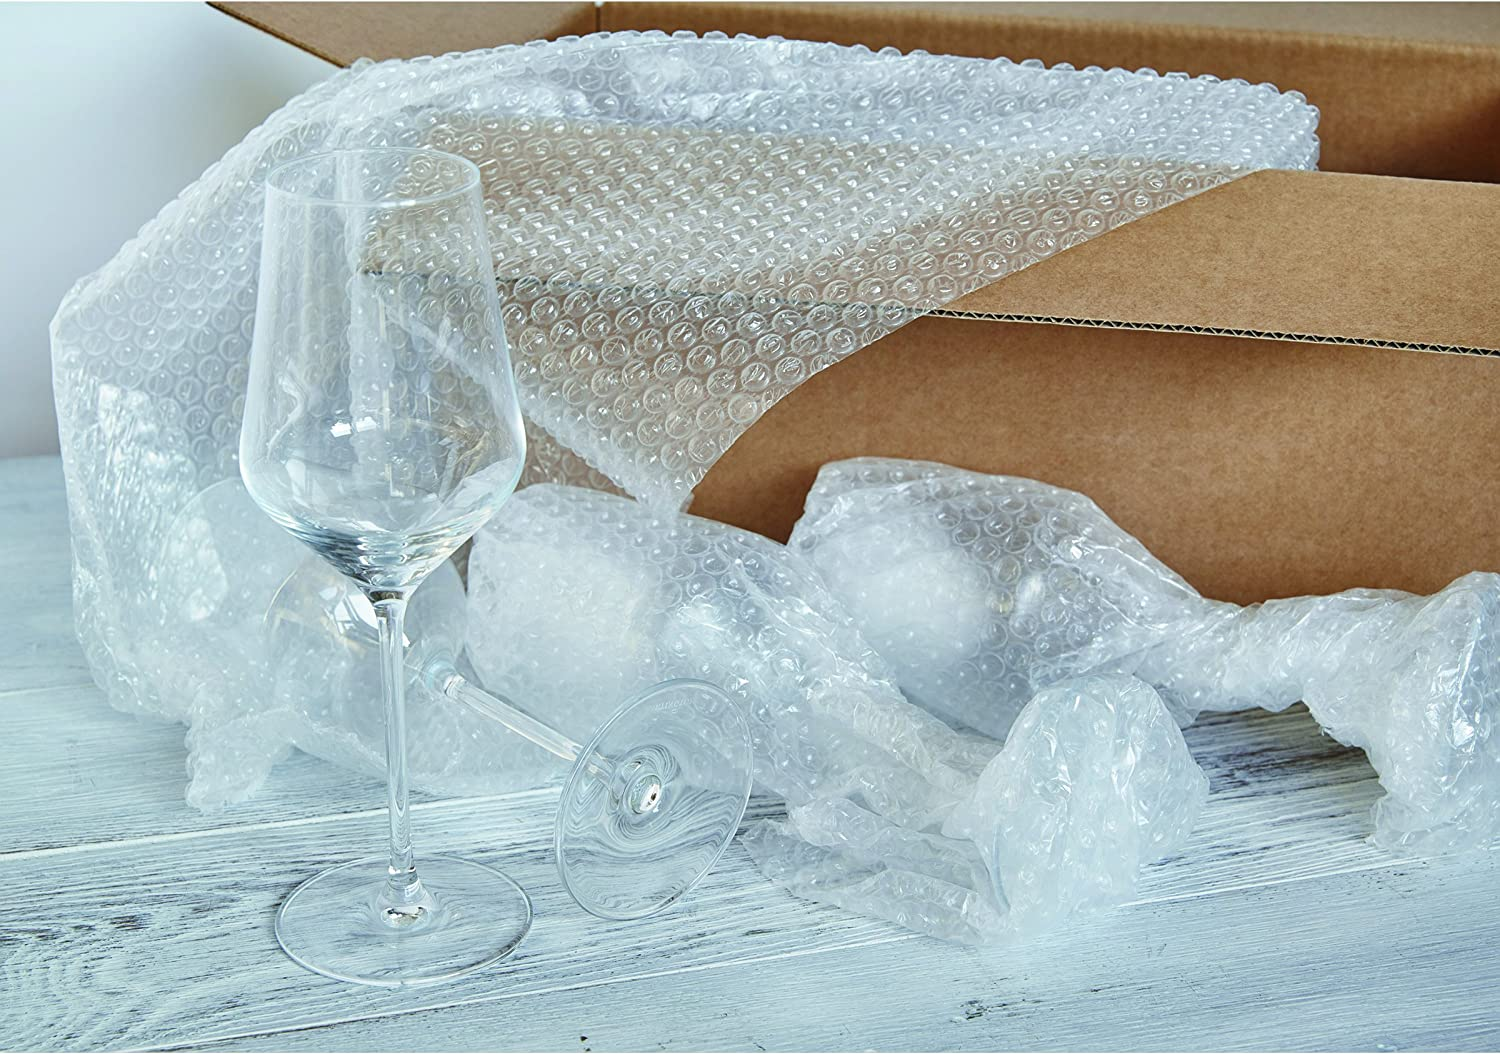 Sealed Air 48561 Recycled Bubble Wrap Light Weight 5//16 Air Cushioning 12 x 100ft